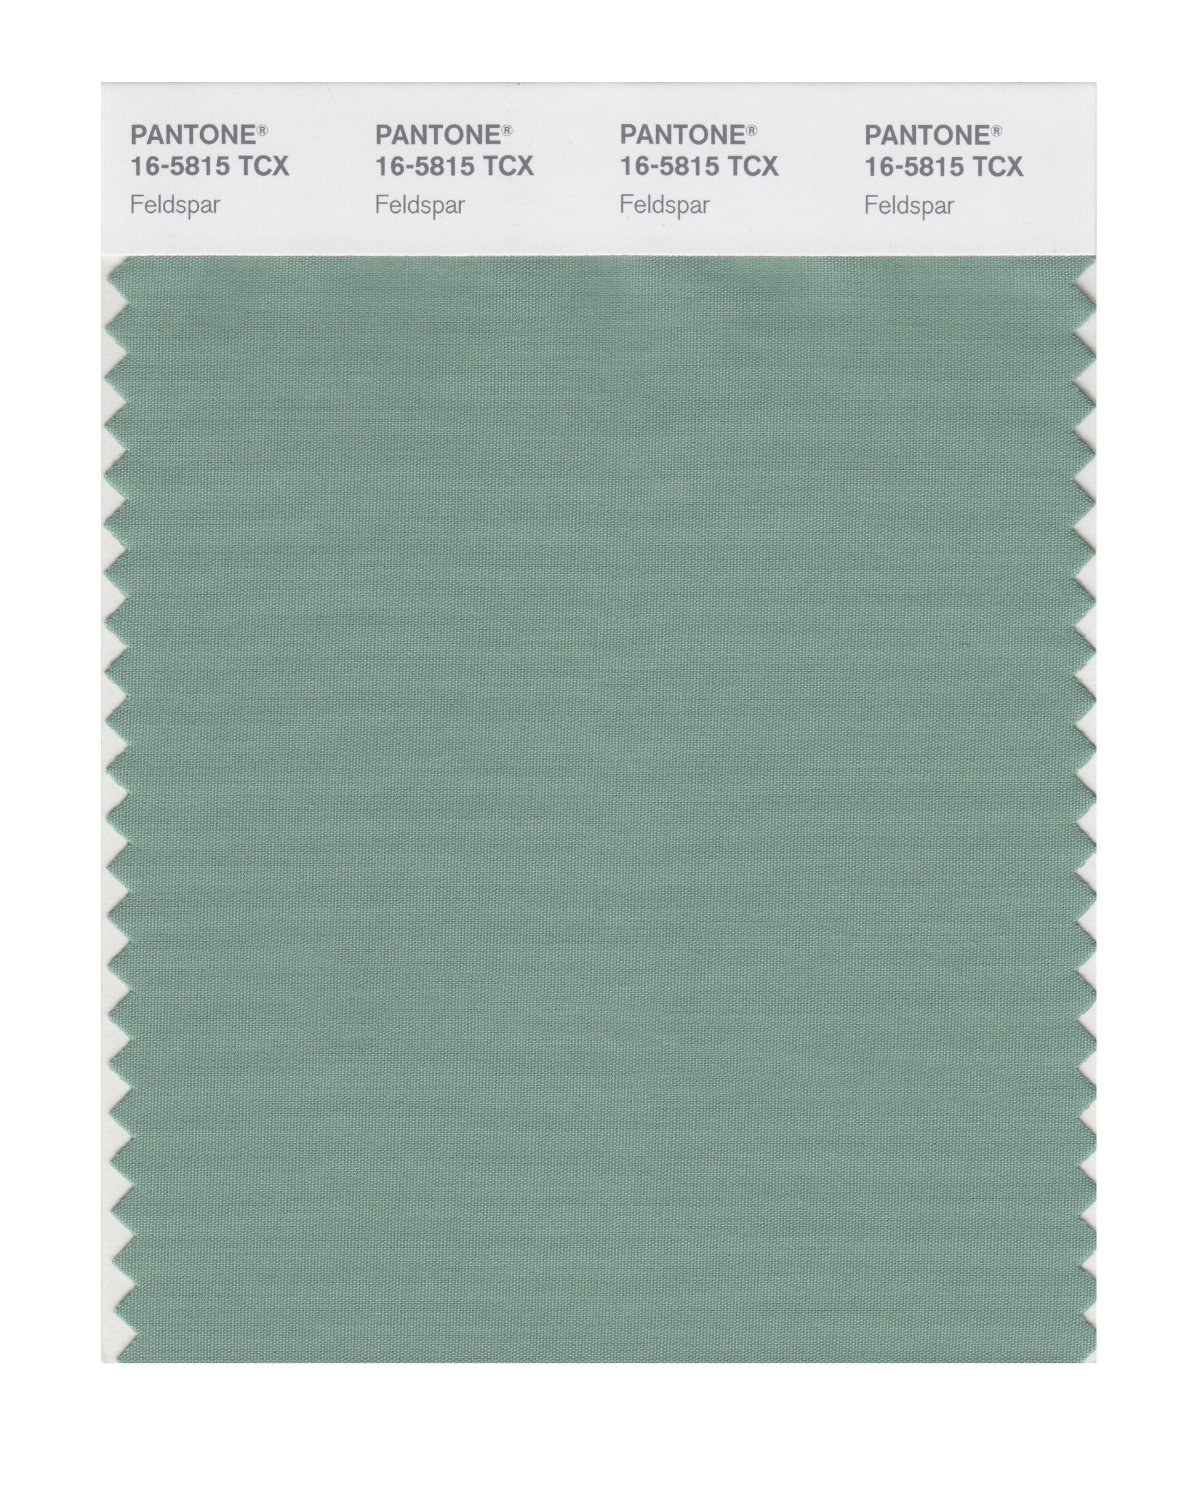 Pantone Smart Swatch 16-5815 Feldspar